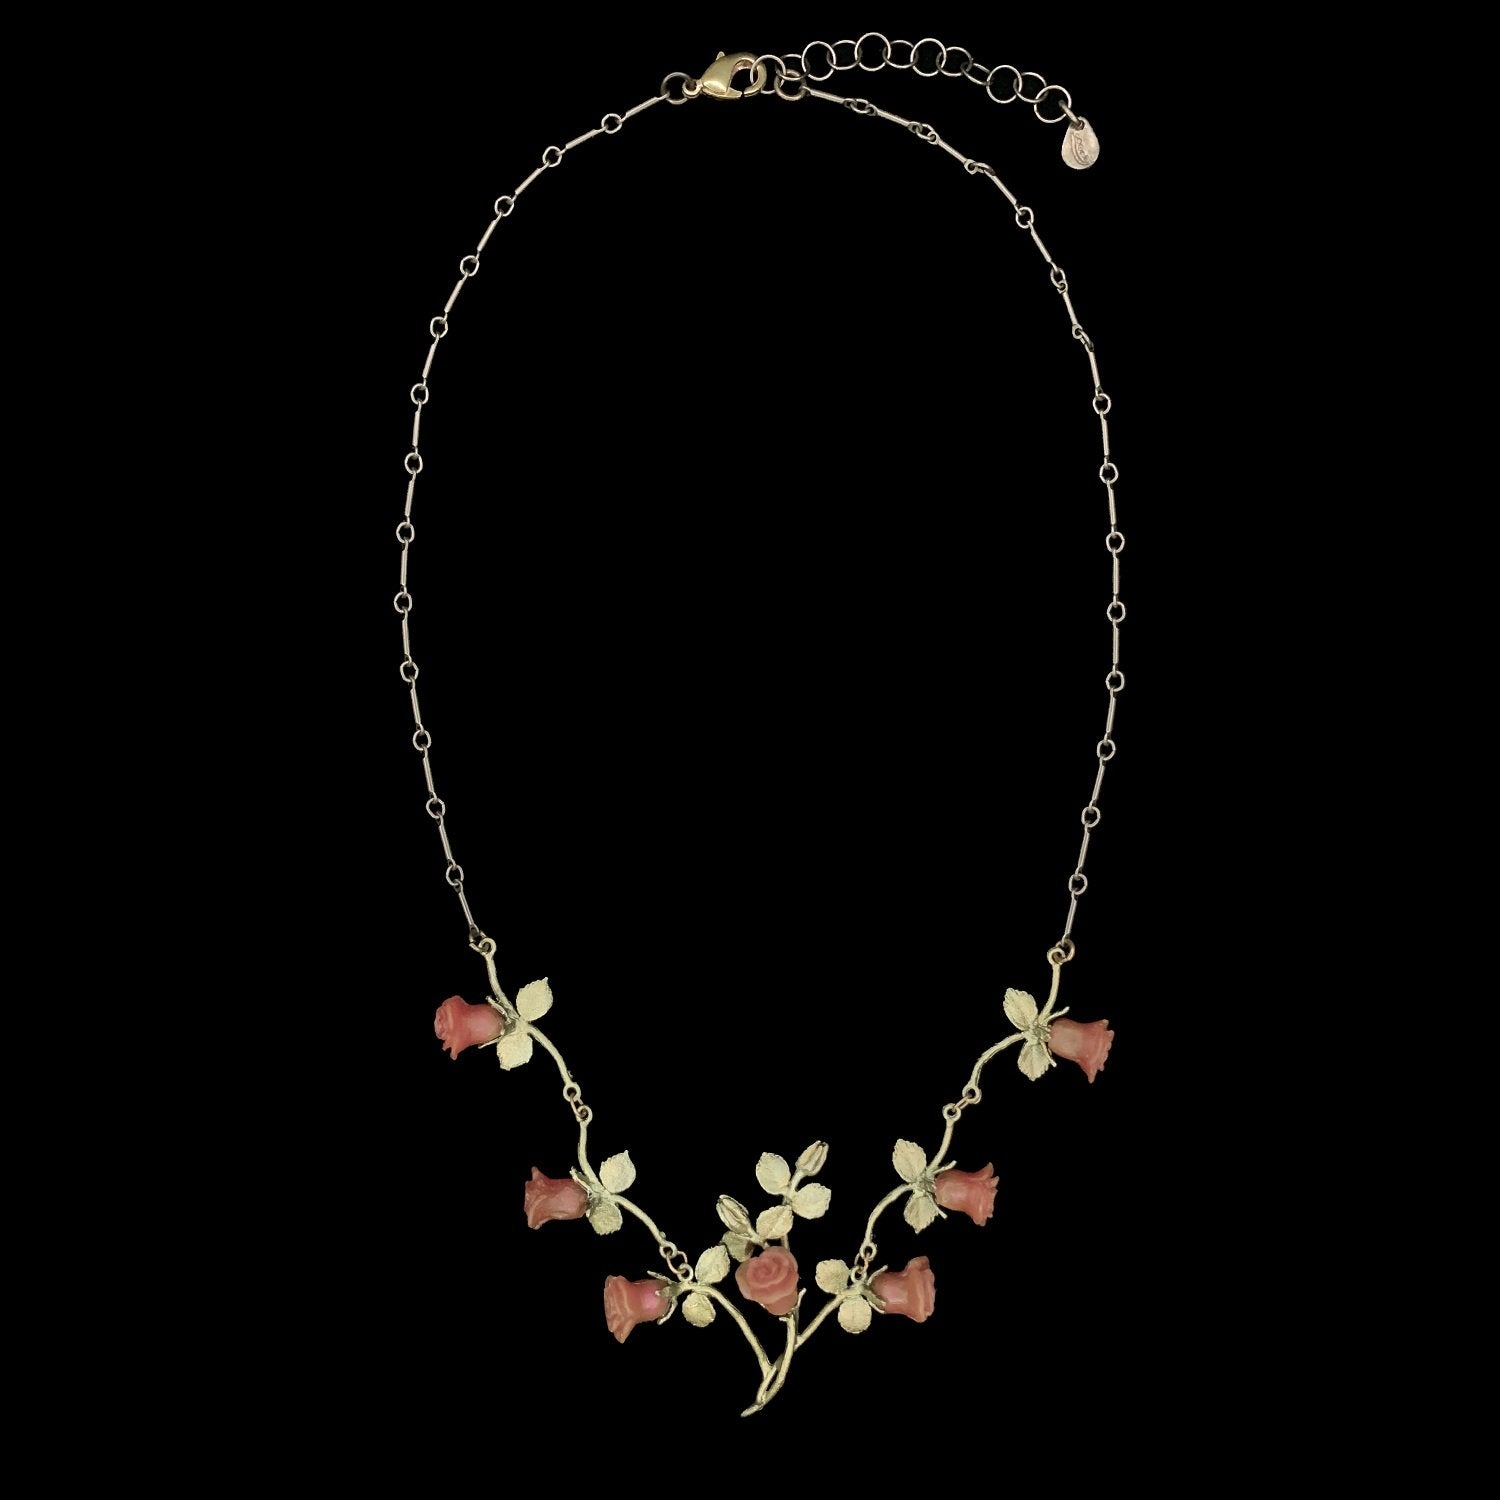 Red Rose Necklace - Vines